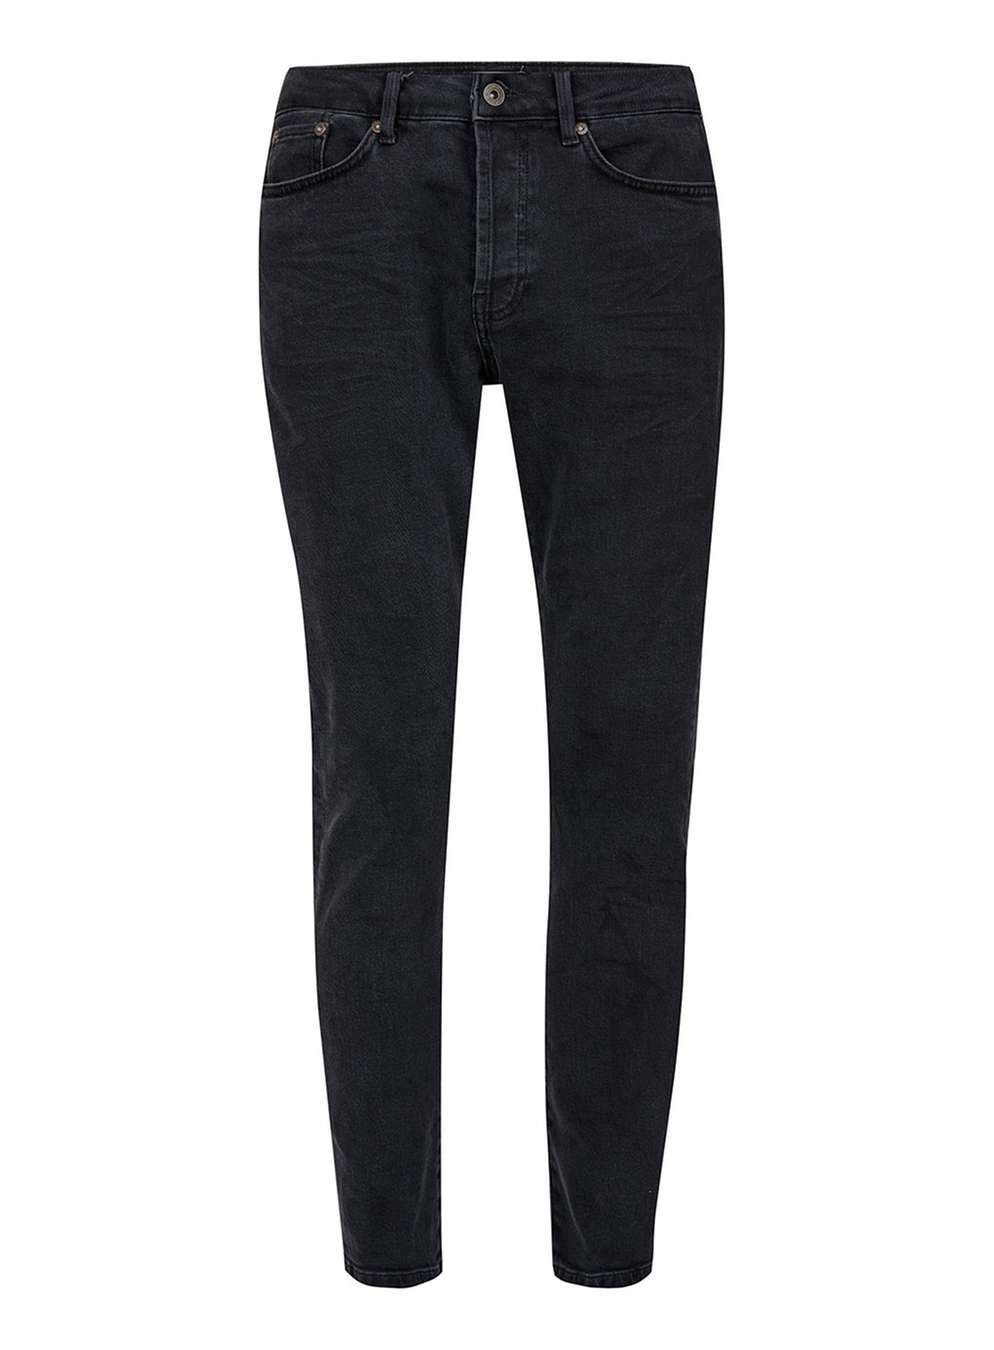 Topman Washed Black Jeans